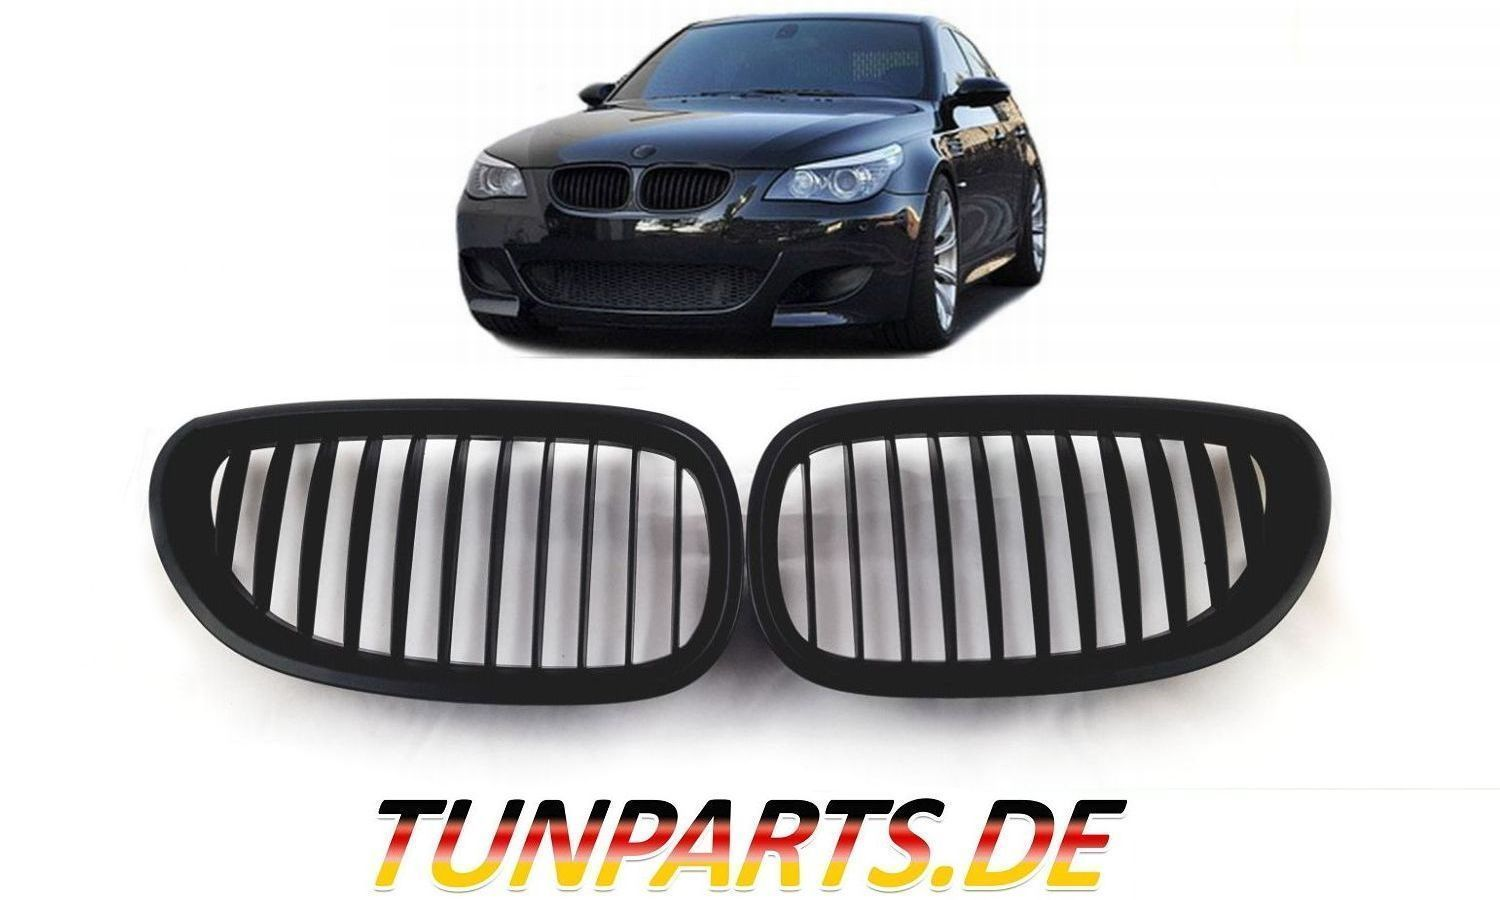 bmw nieren grill k hlergrill bei tunparts g nstig kaufen. Black Bedroom Furniture Sets. Home Design Ideas